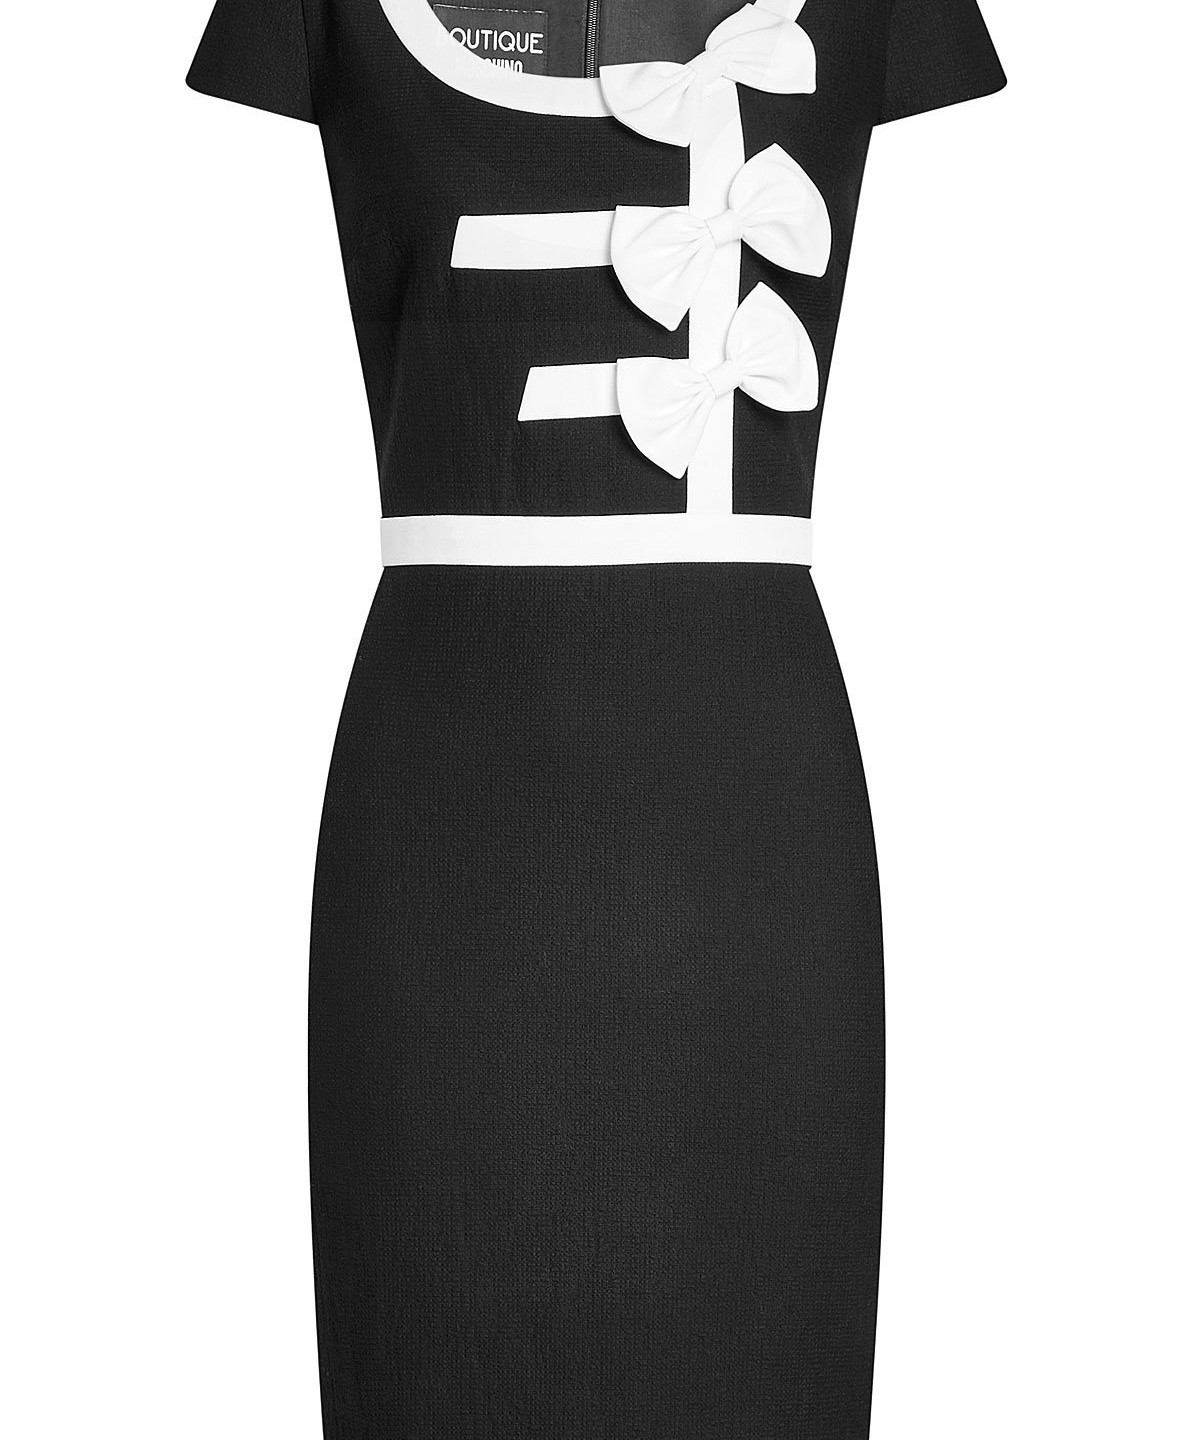 Boutique Moschino BOW DETAIL DRESS £370, BOUTIQUE MOSCHINO AT VOISINS